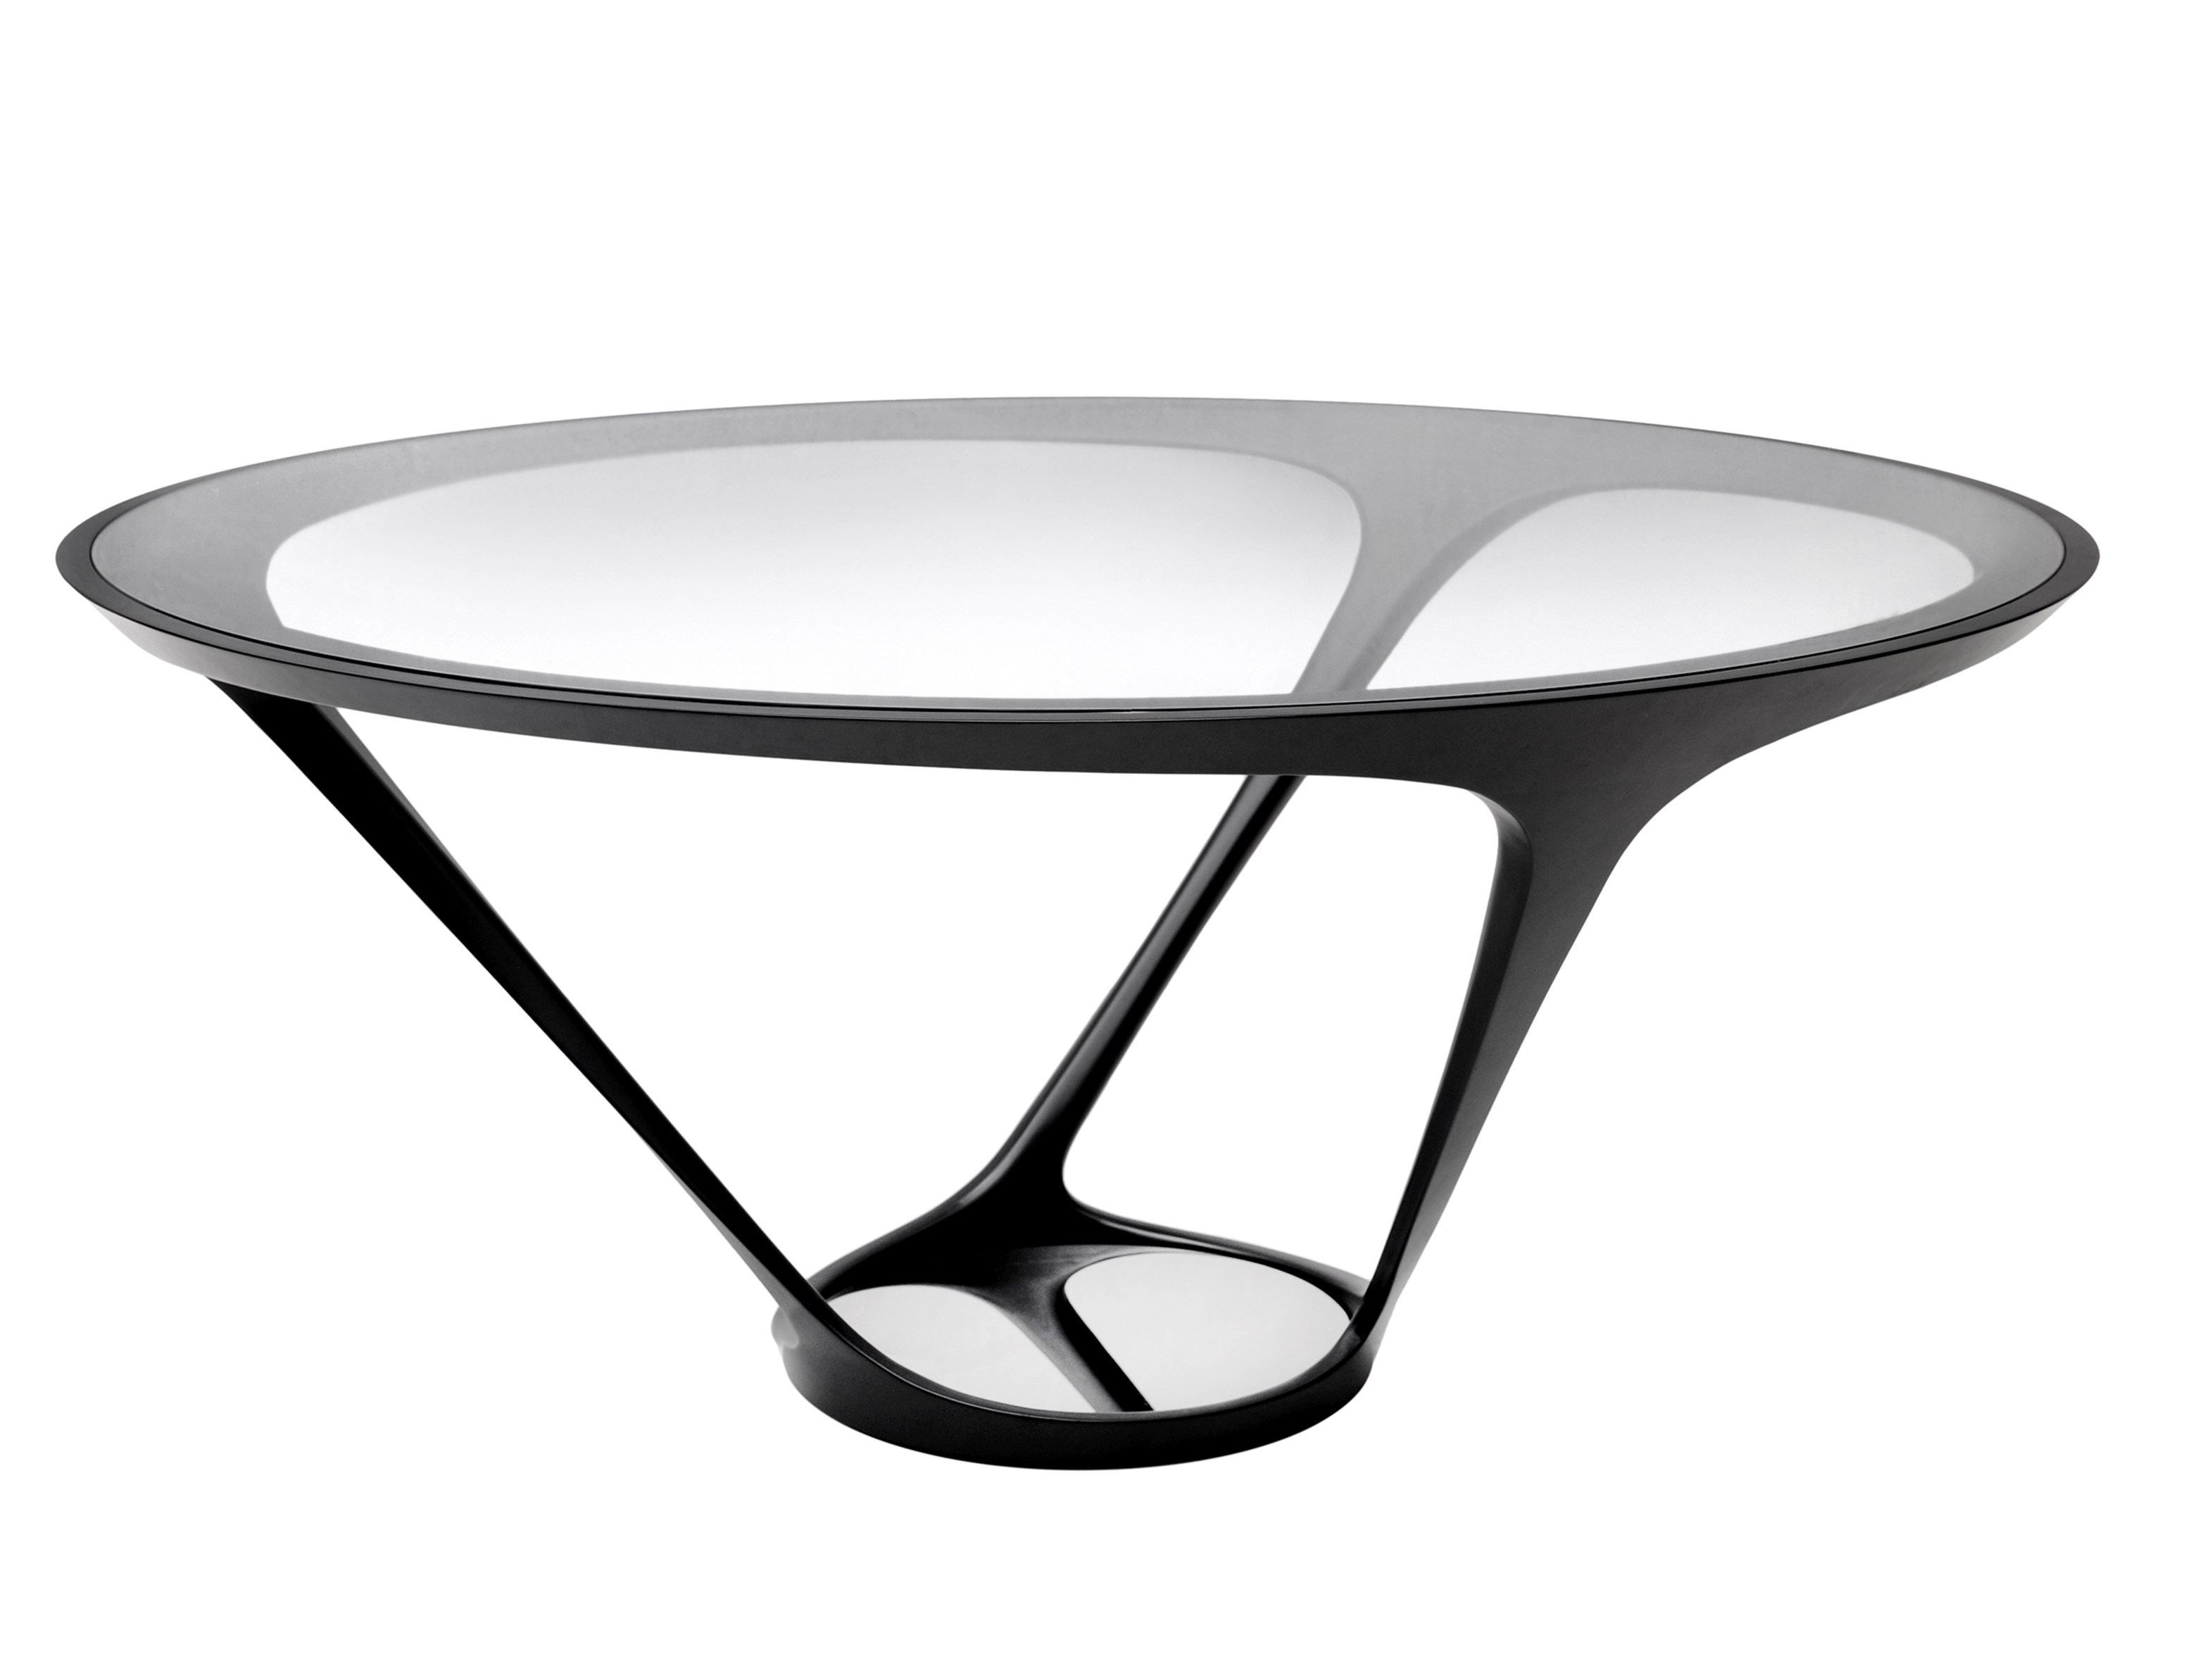 round dining table ora ito les contemporains collection by. Black Bedroom Furniture Sets. Home Design Ideas